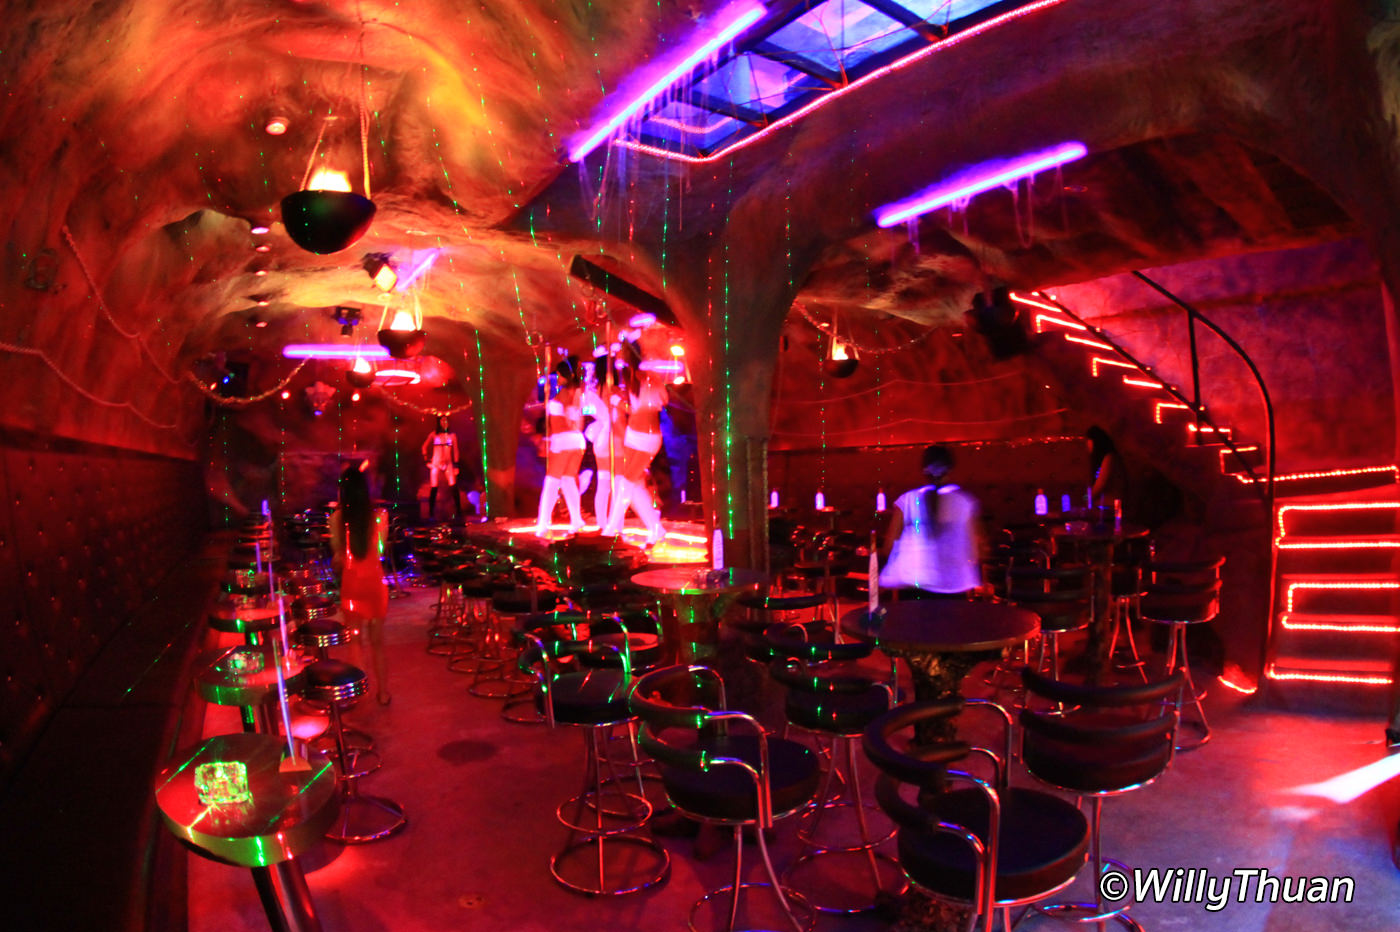 Inside Phuket Go Go Bars - What Really Happens in a Go Go Bar?